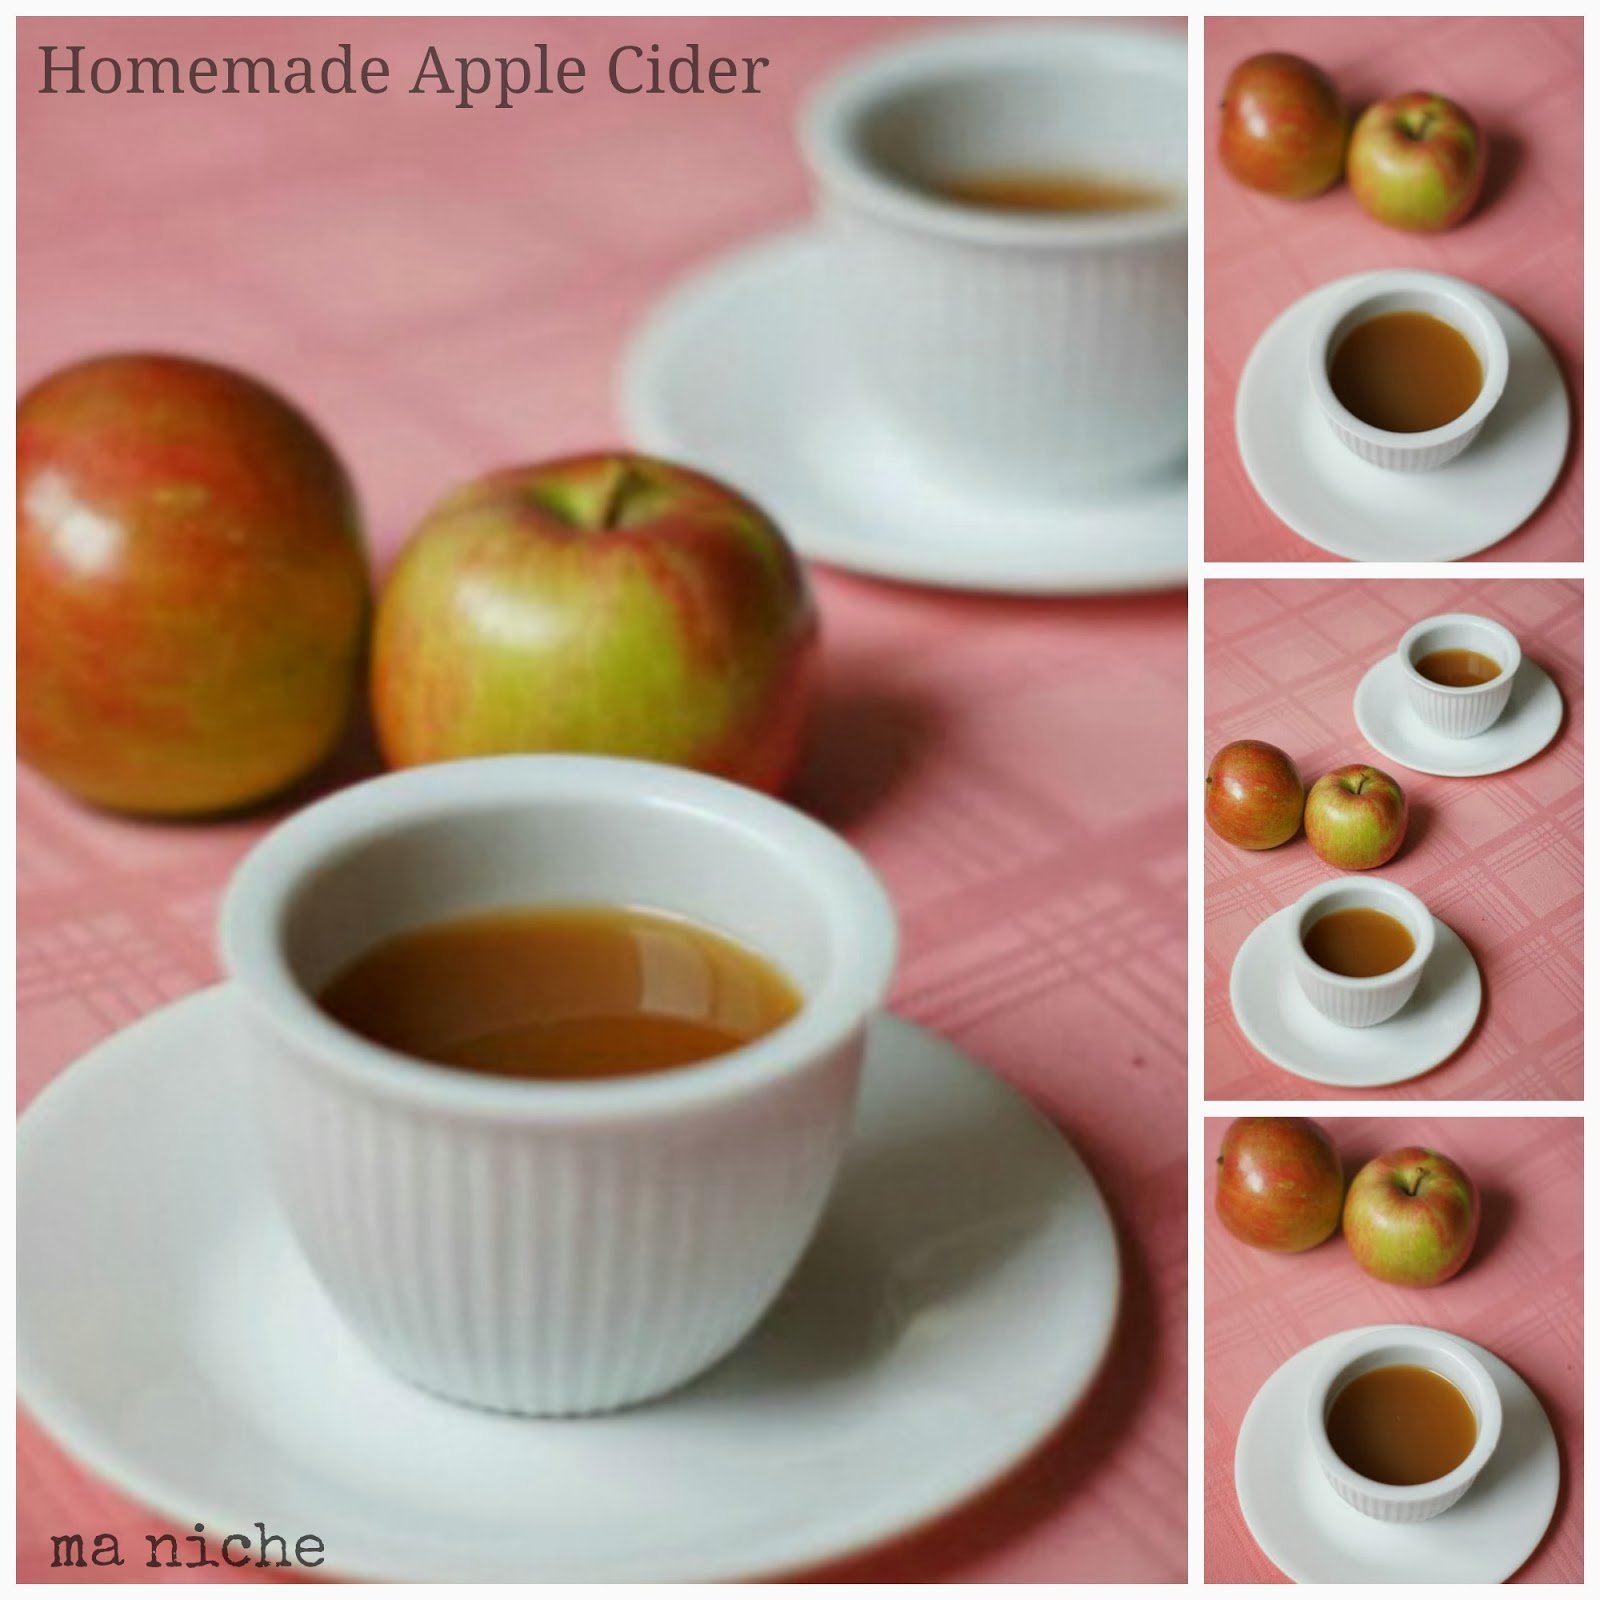 how to make fruit cider at home